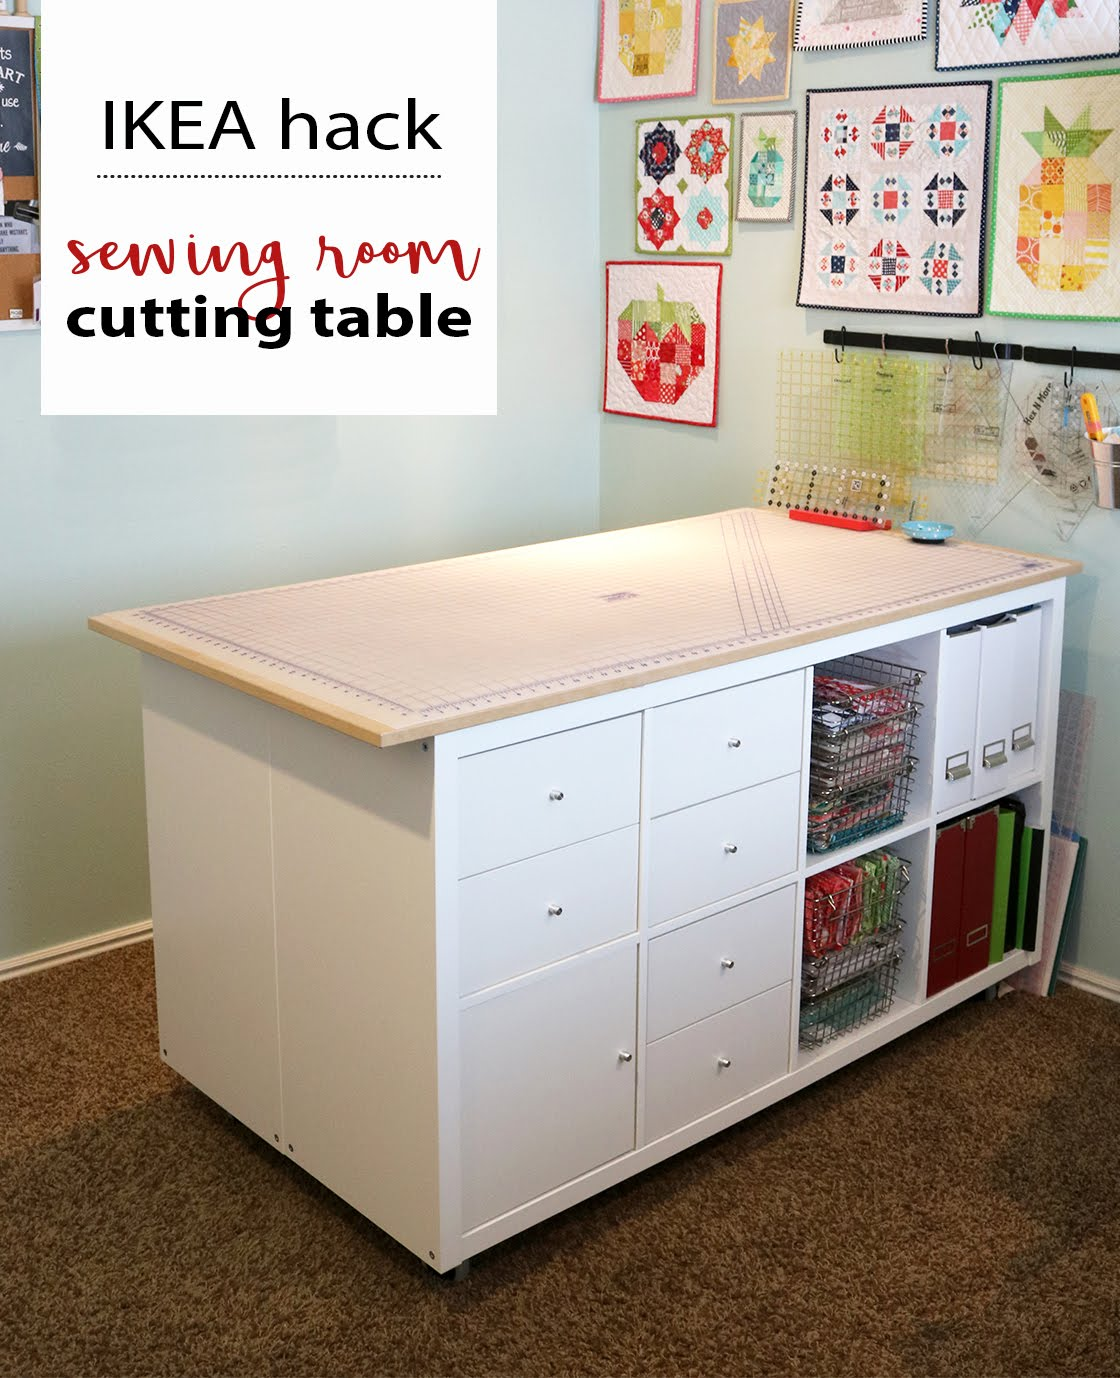 A Bright Corner Diy Sewing Room Cutting Table Ikea Hack